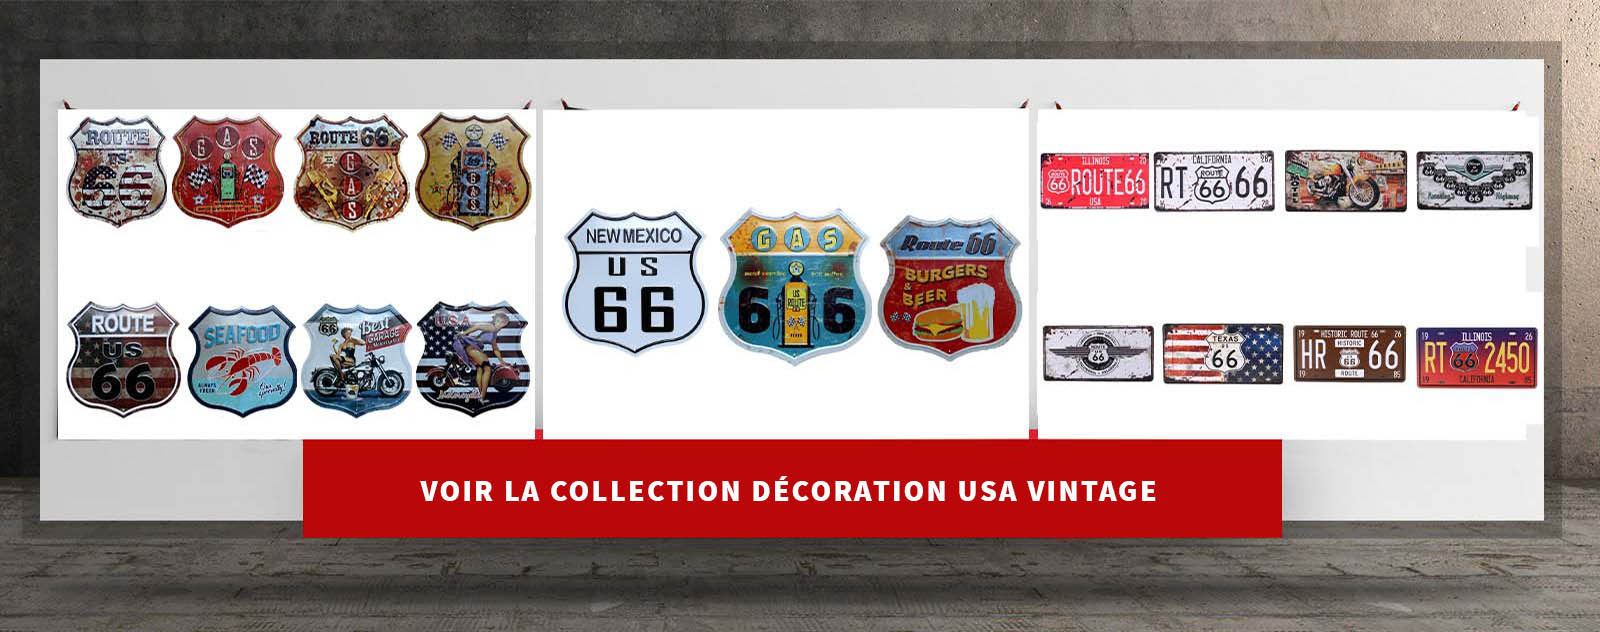 banniere vers collection decoration usa